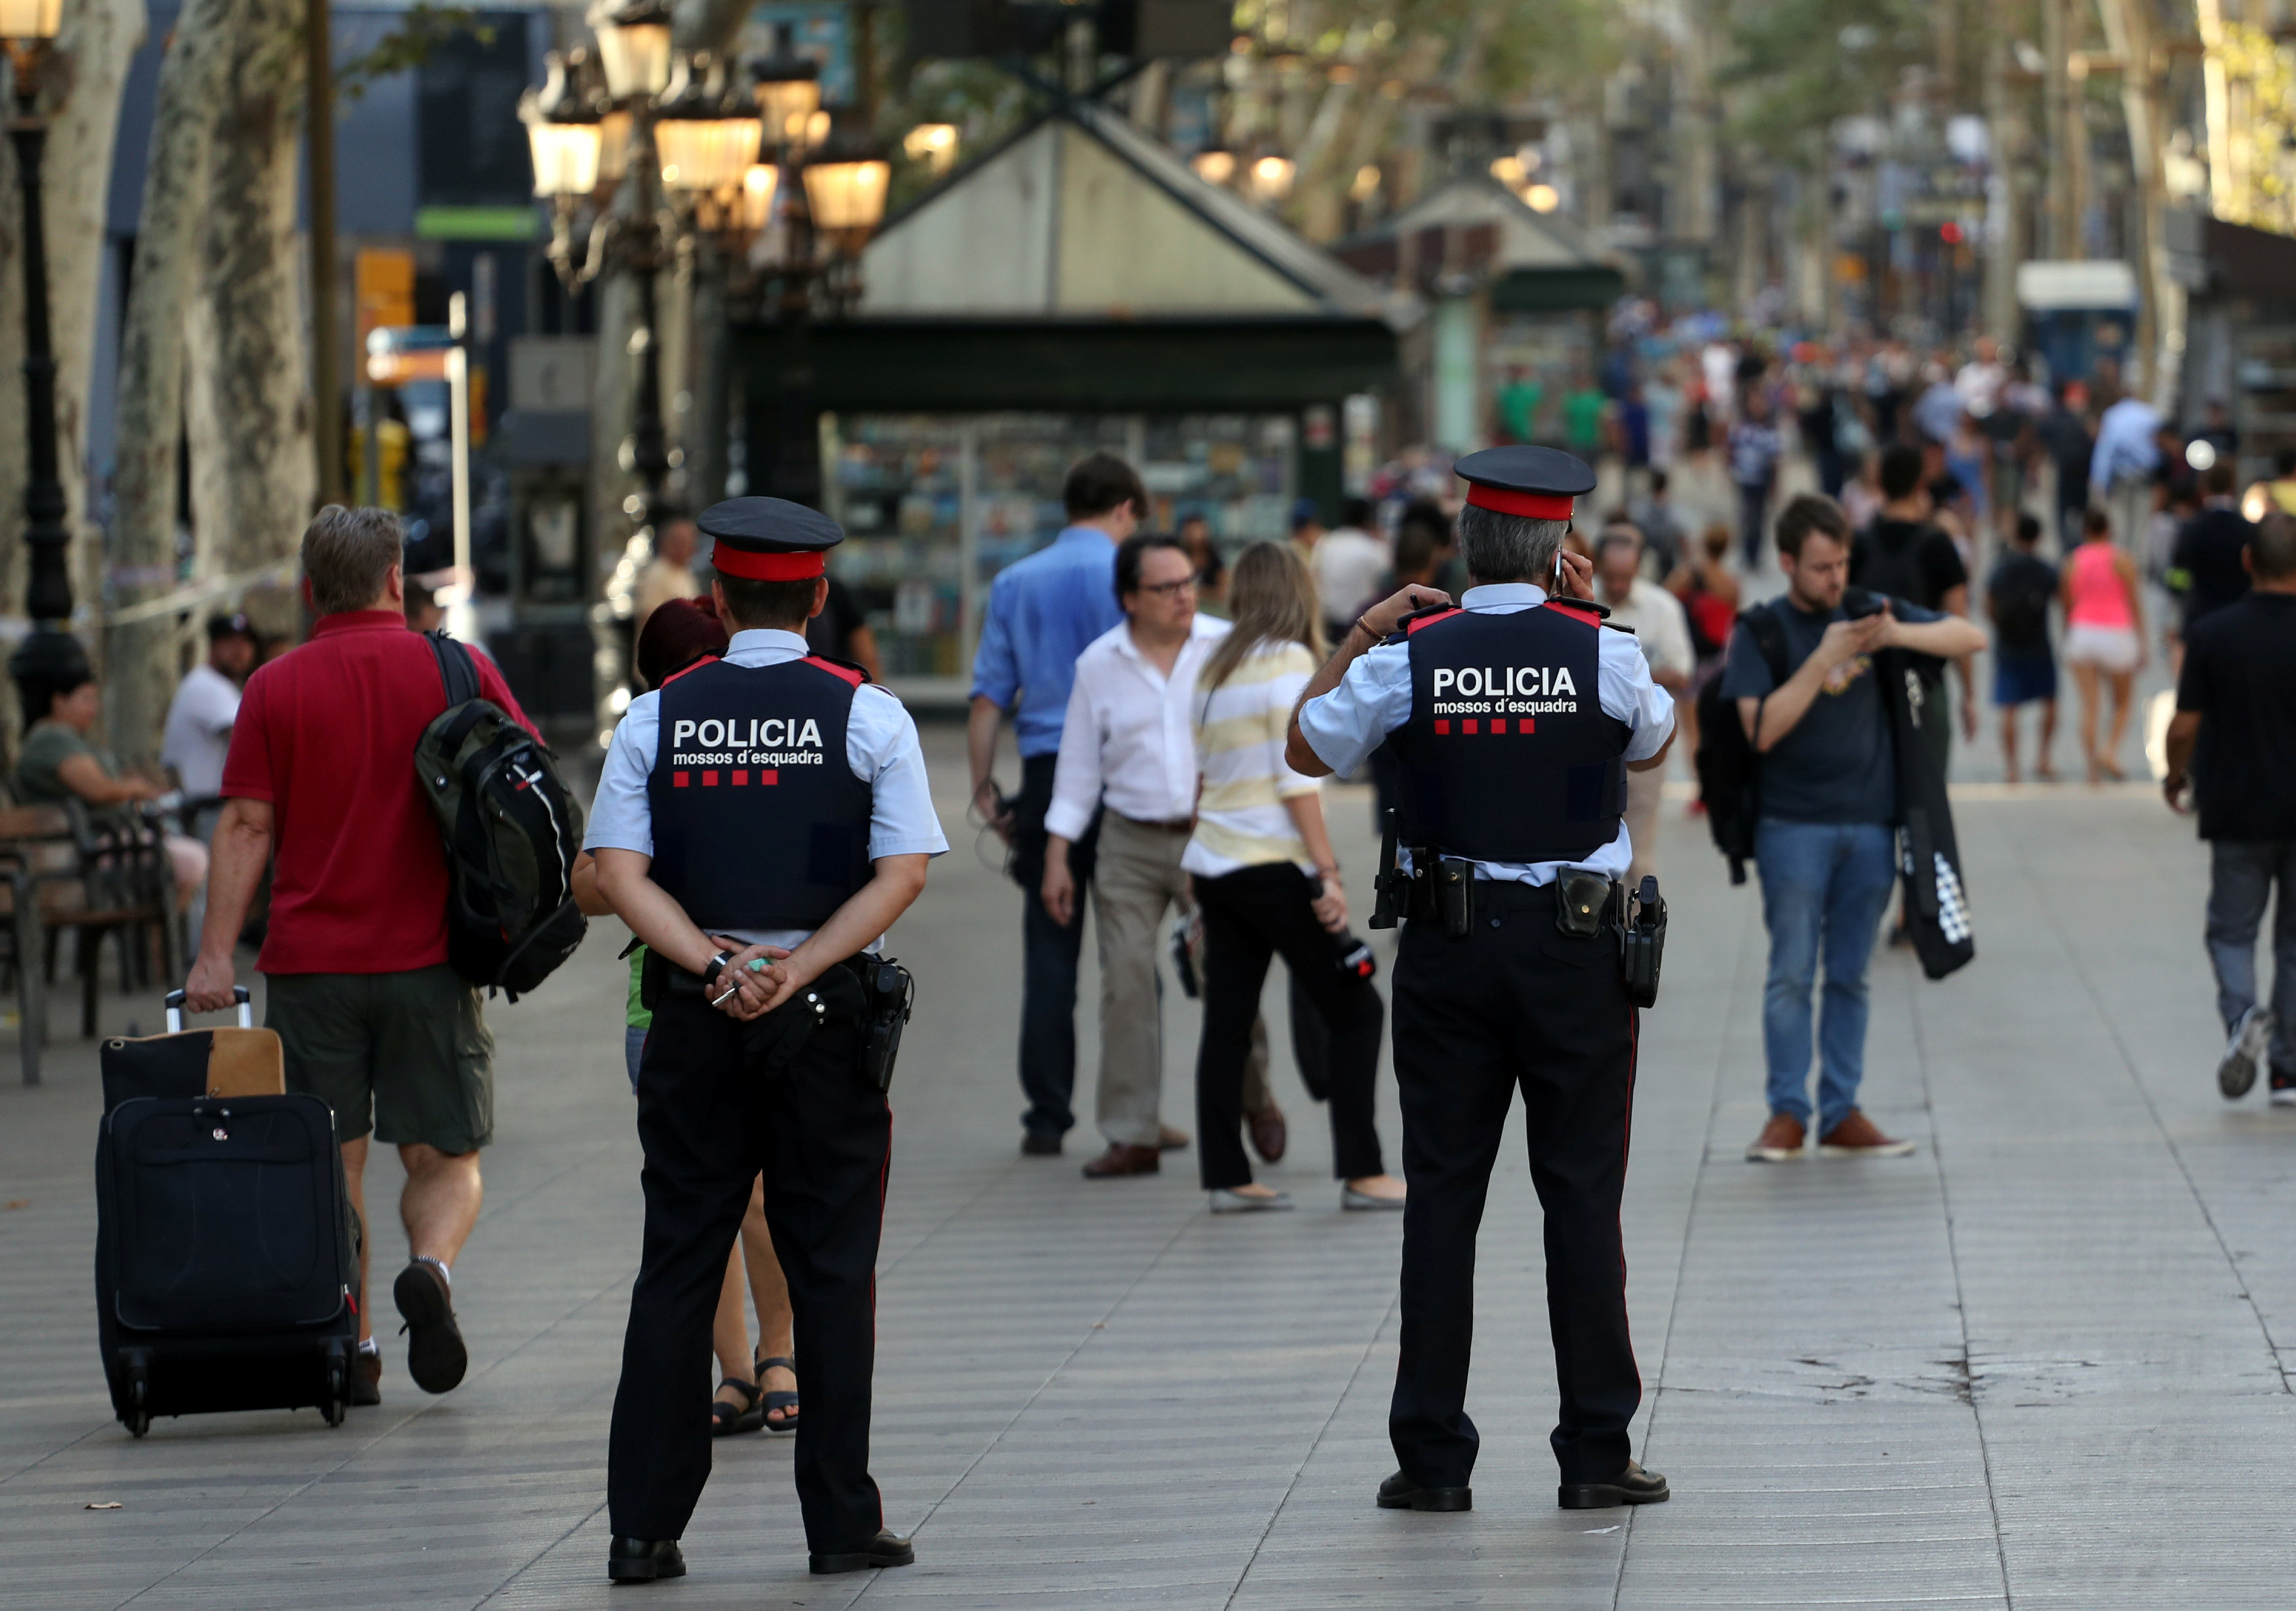 Catalan Mossos d'esquadra officers patrol at Las Ramblas street where a van crashed into pedestrians in Barcelona, Spain August 18, 2017. (REUTERS/Sergio Perez)